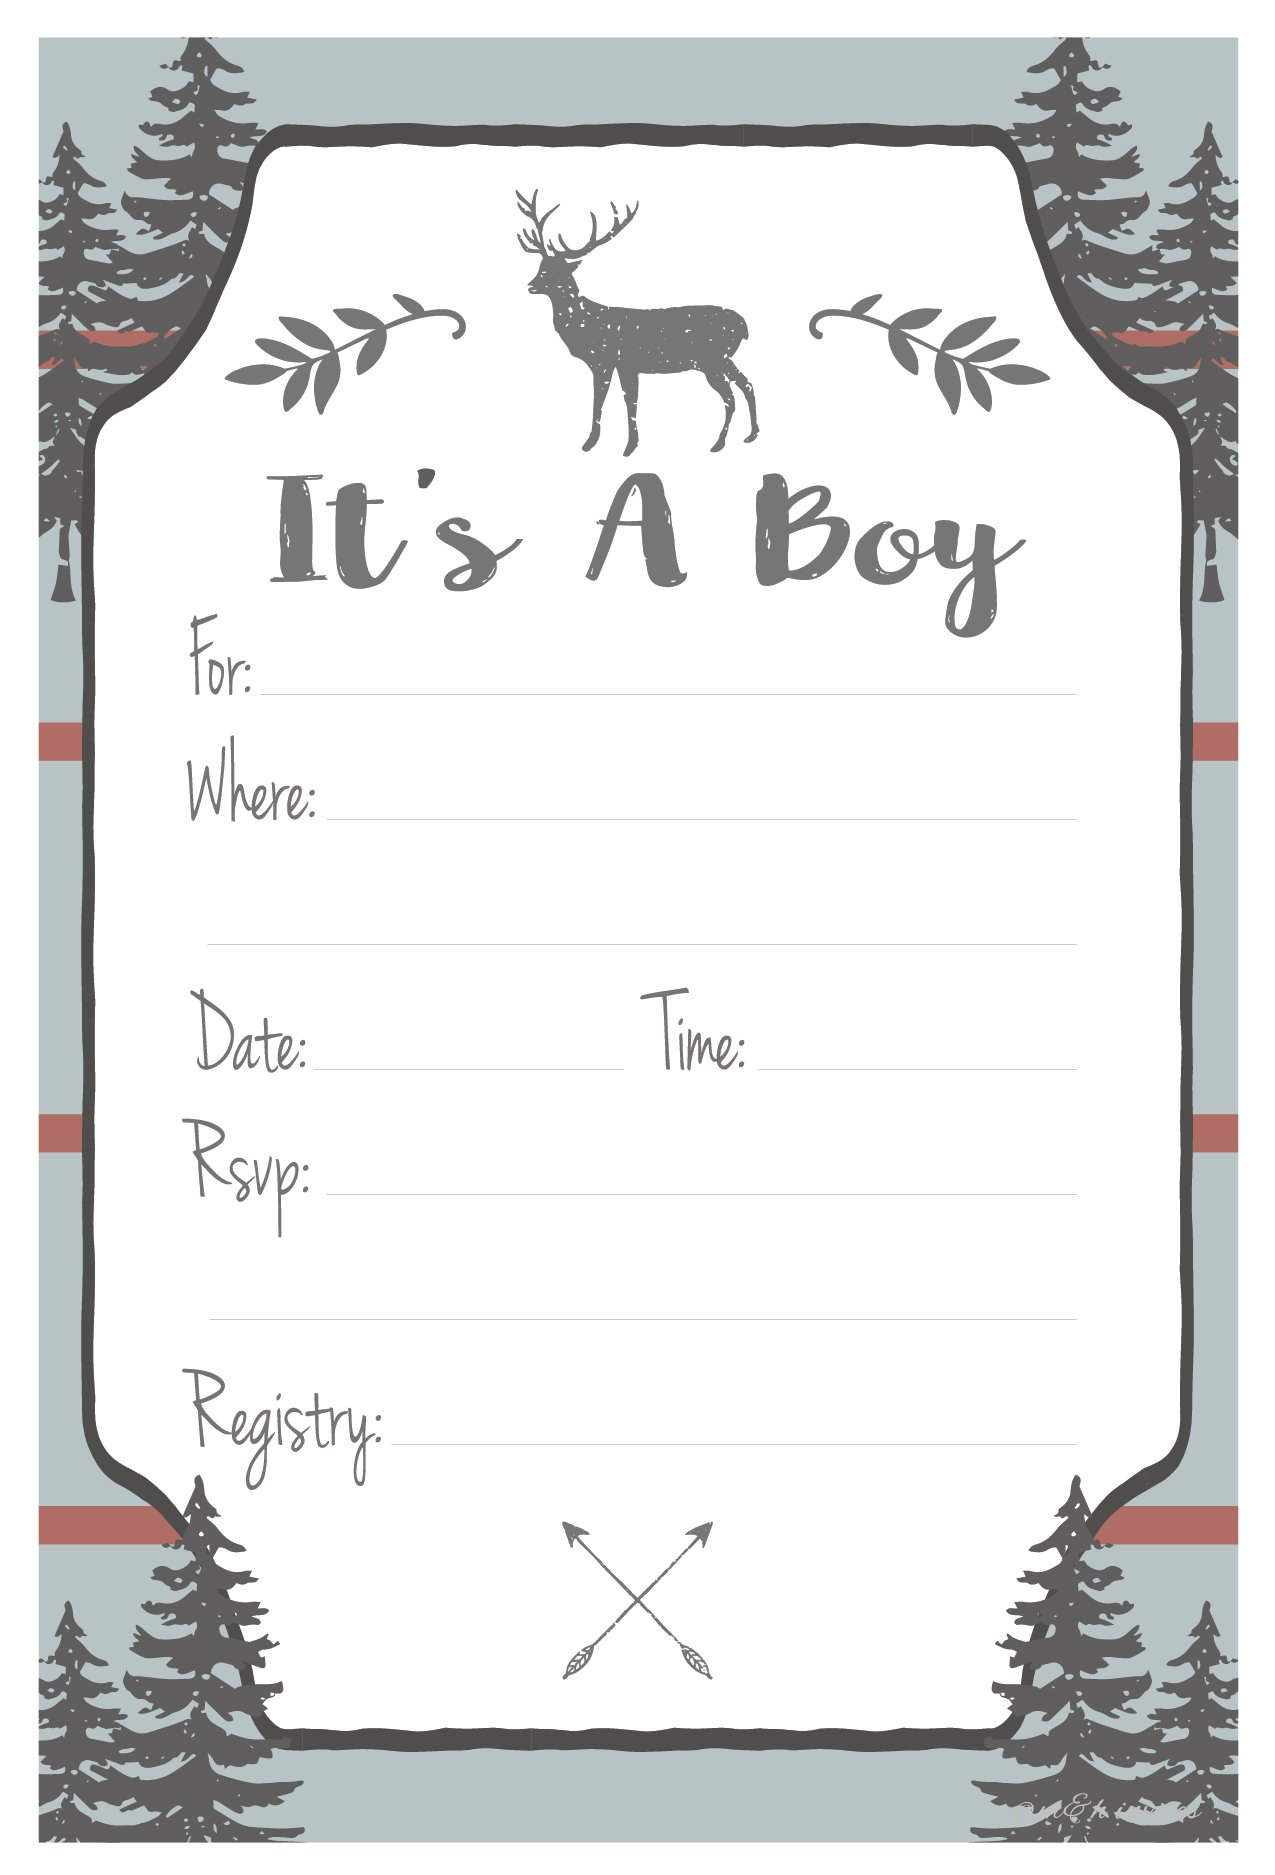 Rustic Deer Boy Baby Shower Invitations - Fill In Style (20 Count) With Envelopes